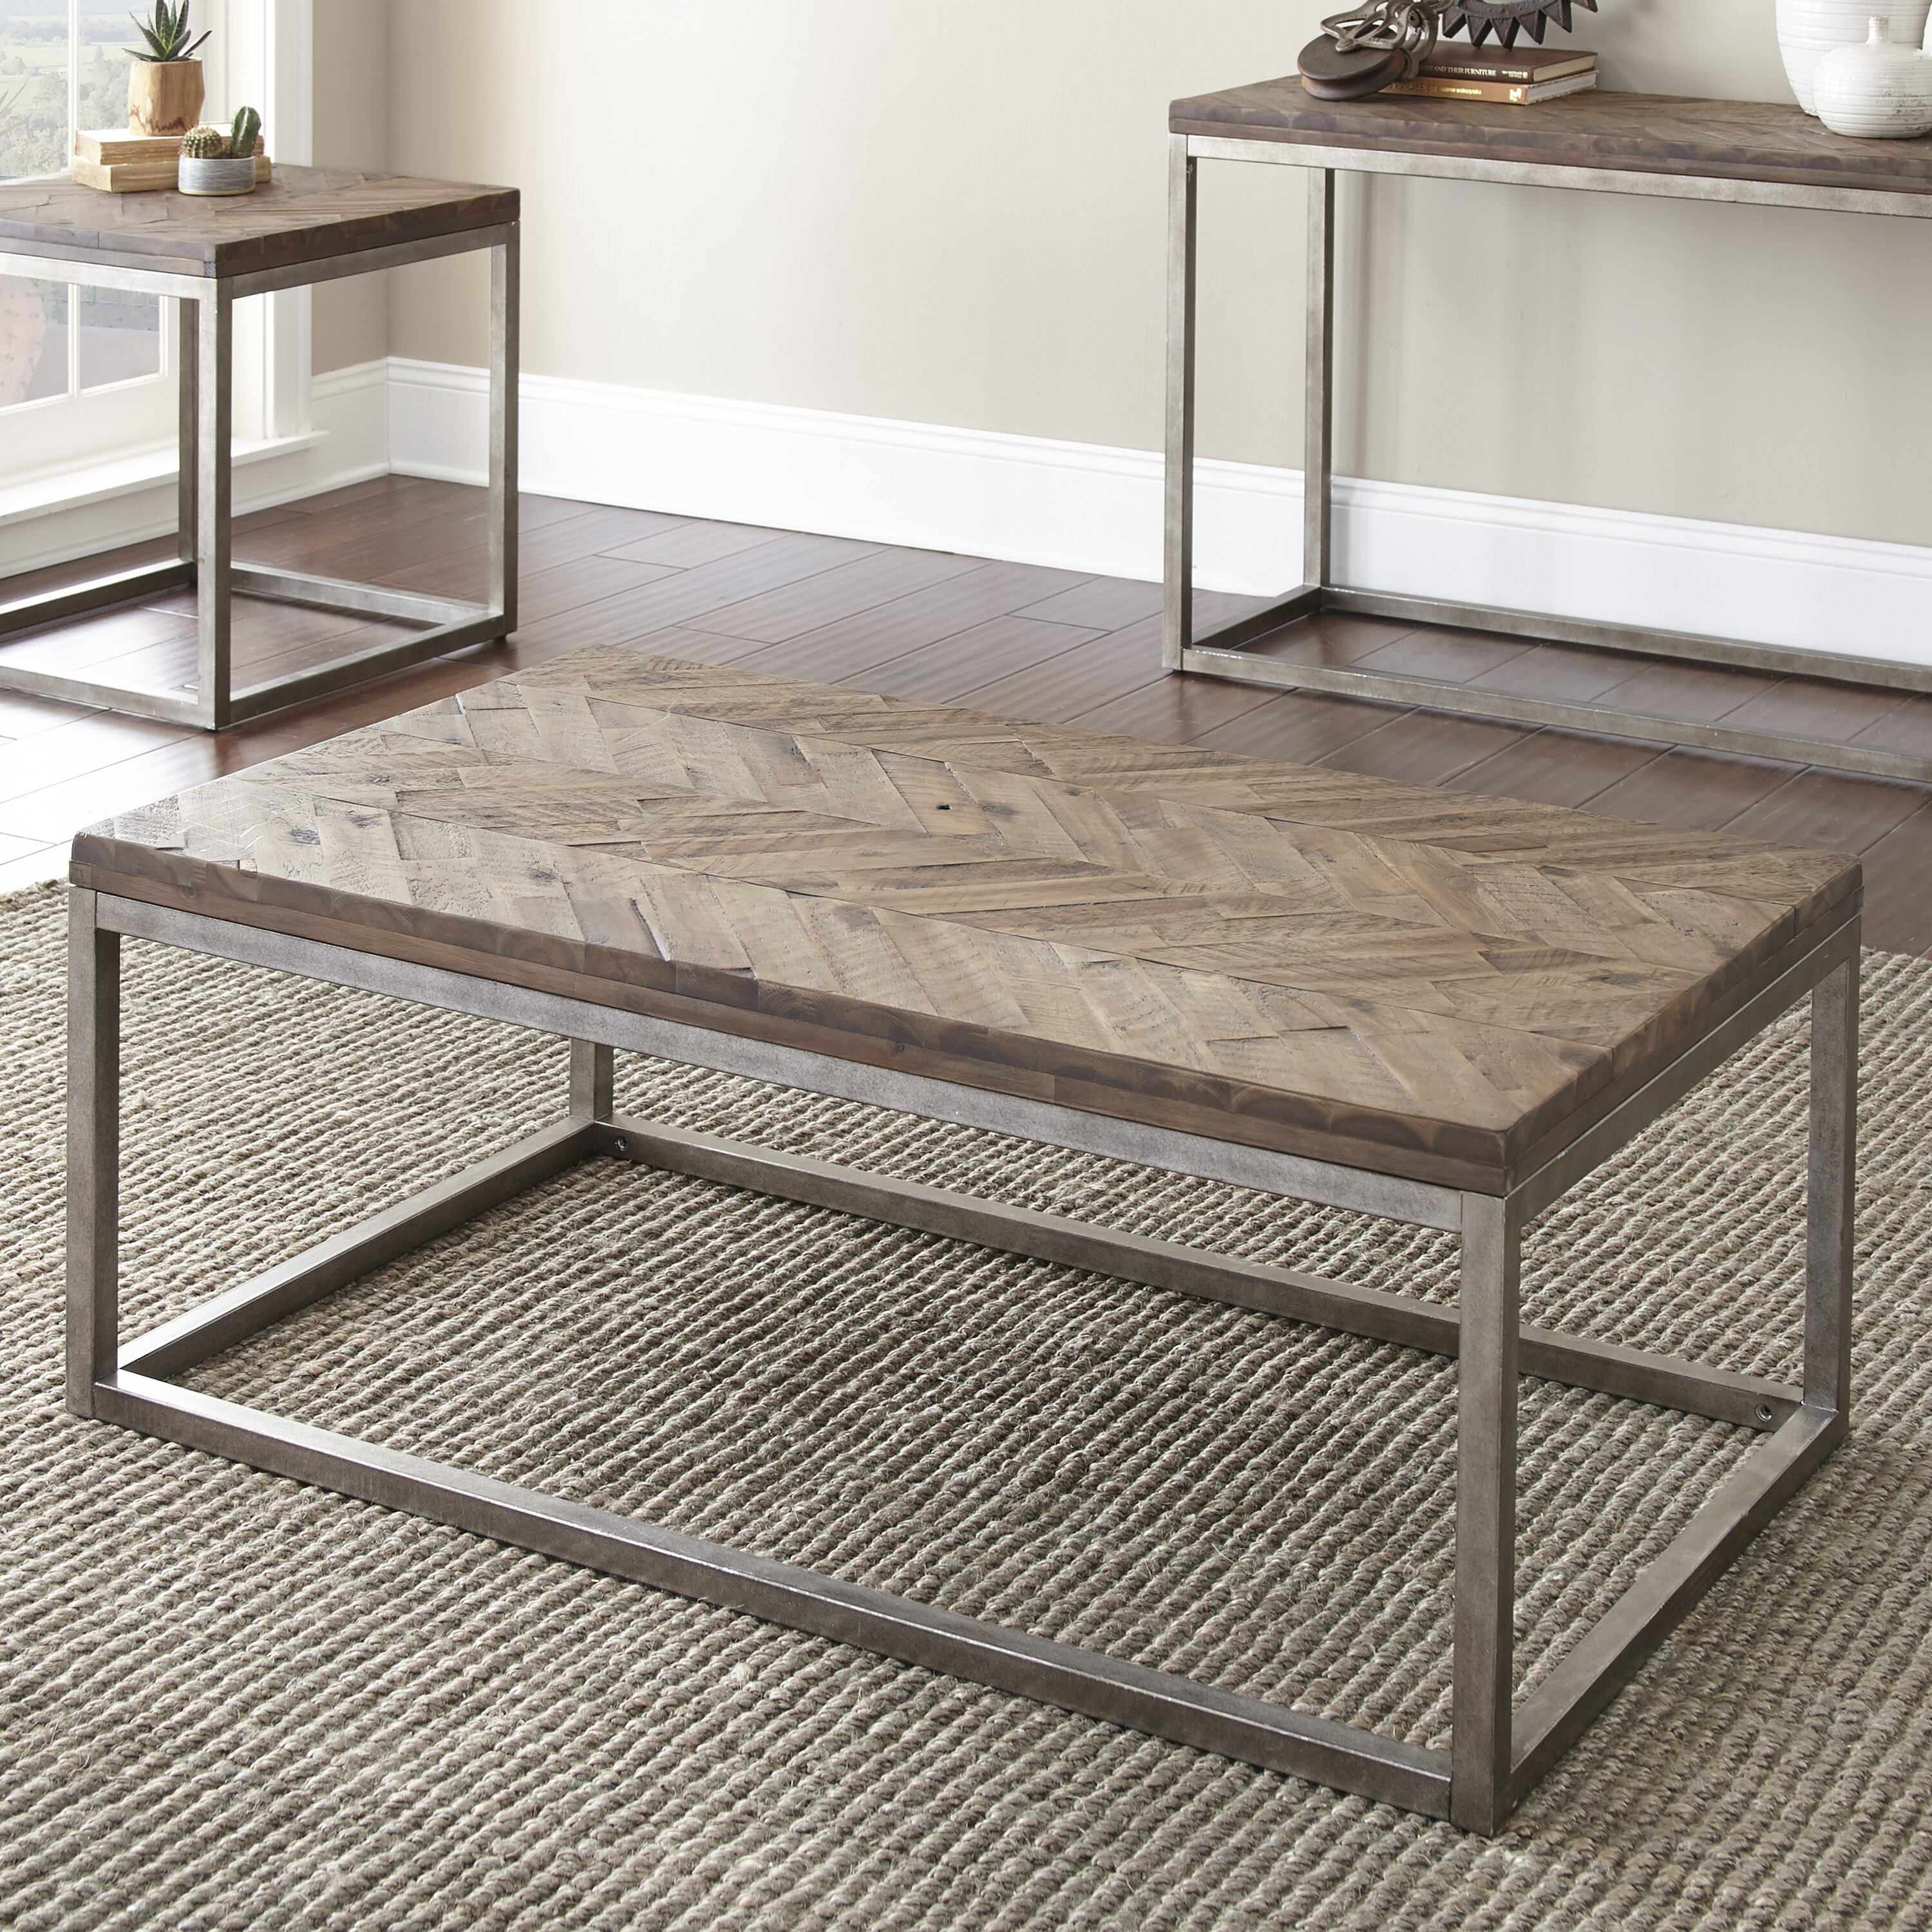 Superior Laurel Foundry Modern Farmhouse Kenton Coffee Table U0026 Reviews | Wayfair